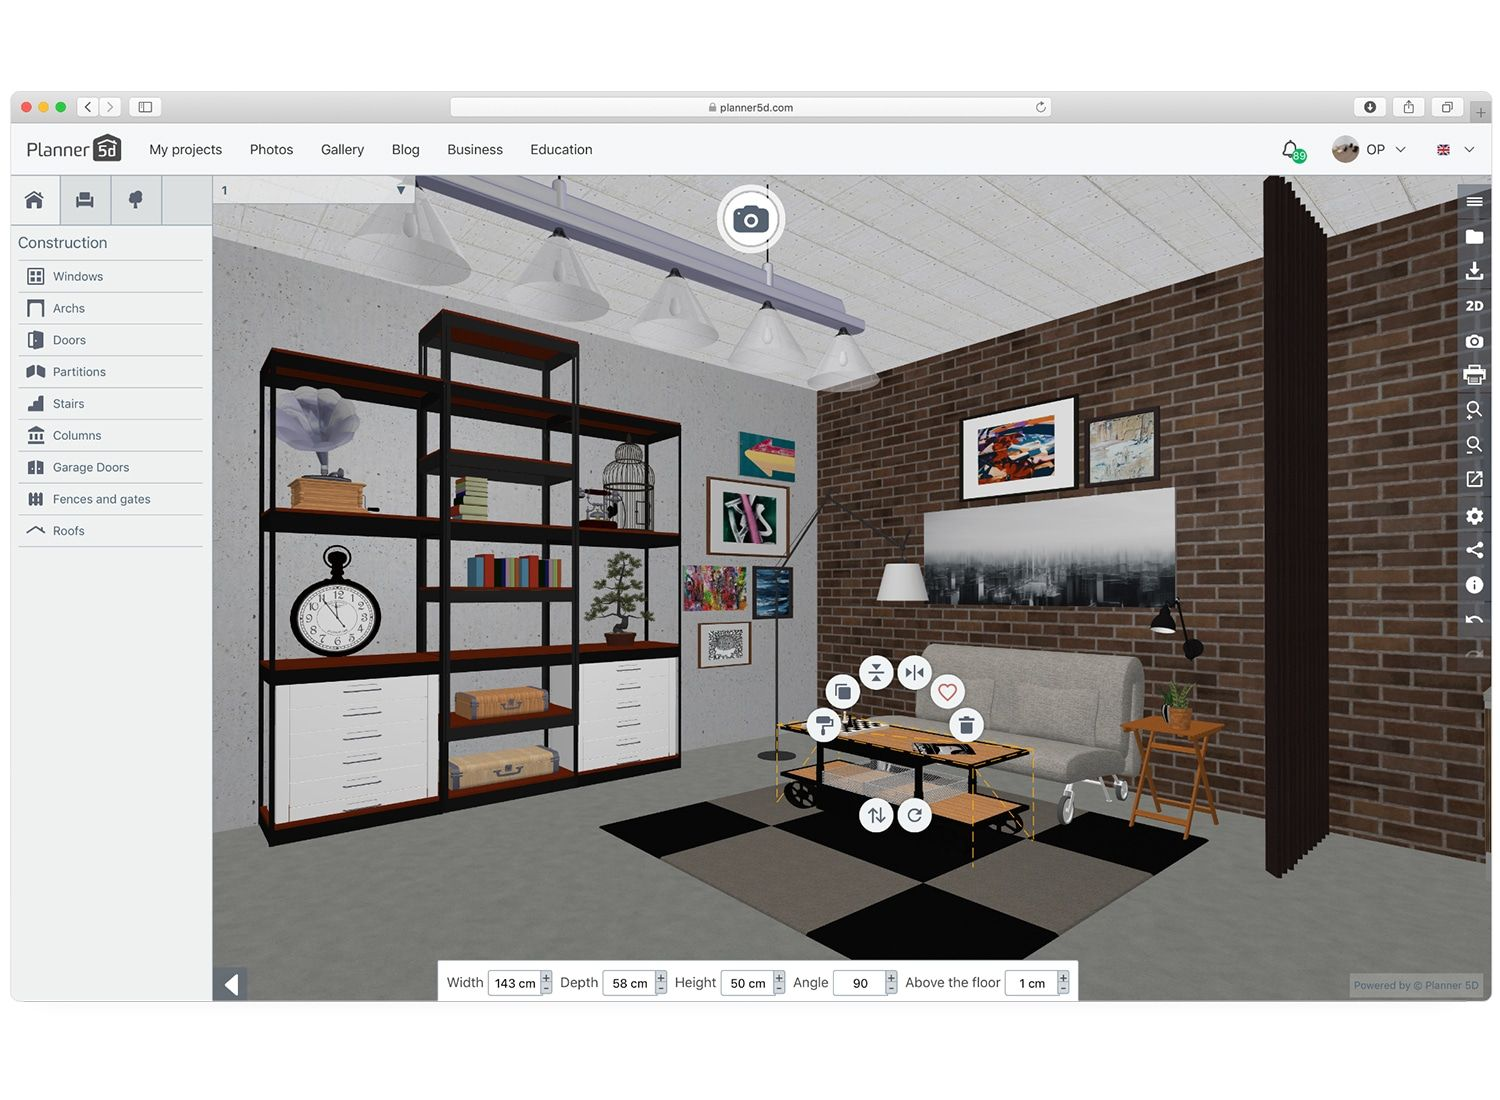 Home Design Software Interior Design Tool Online For Home Floor Plans In 2d 3d In 2021 Home Design Software Design Your Home House Design